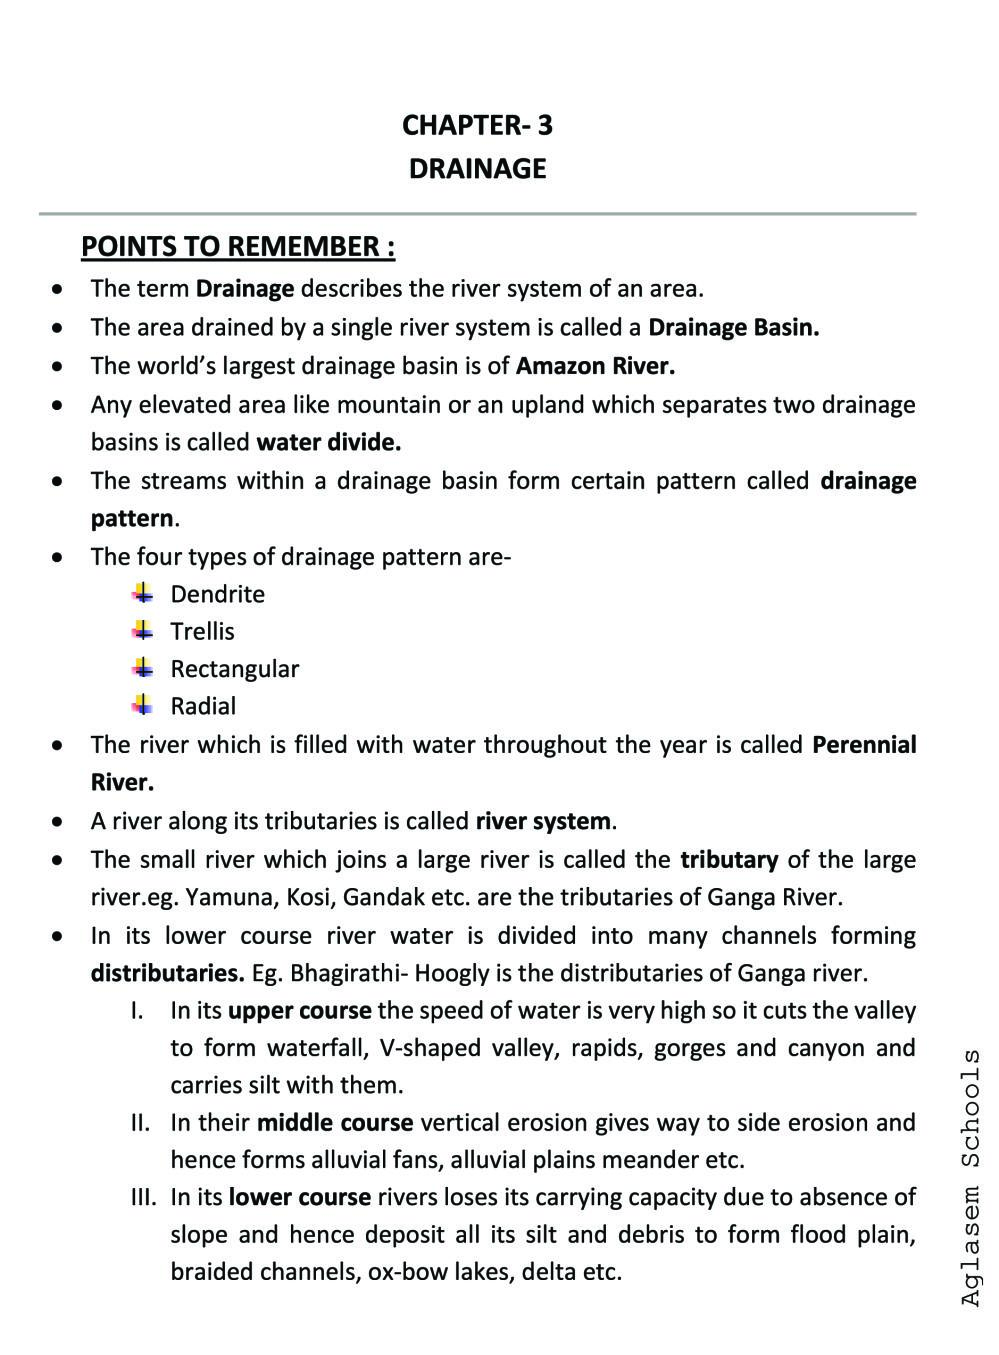 Class 9 Social Science (Geography) Drainage Notes, Important